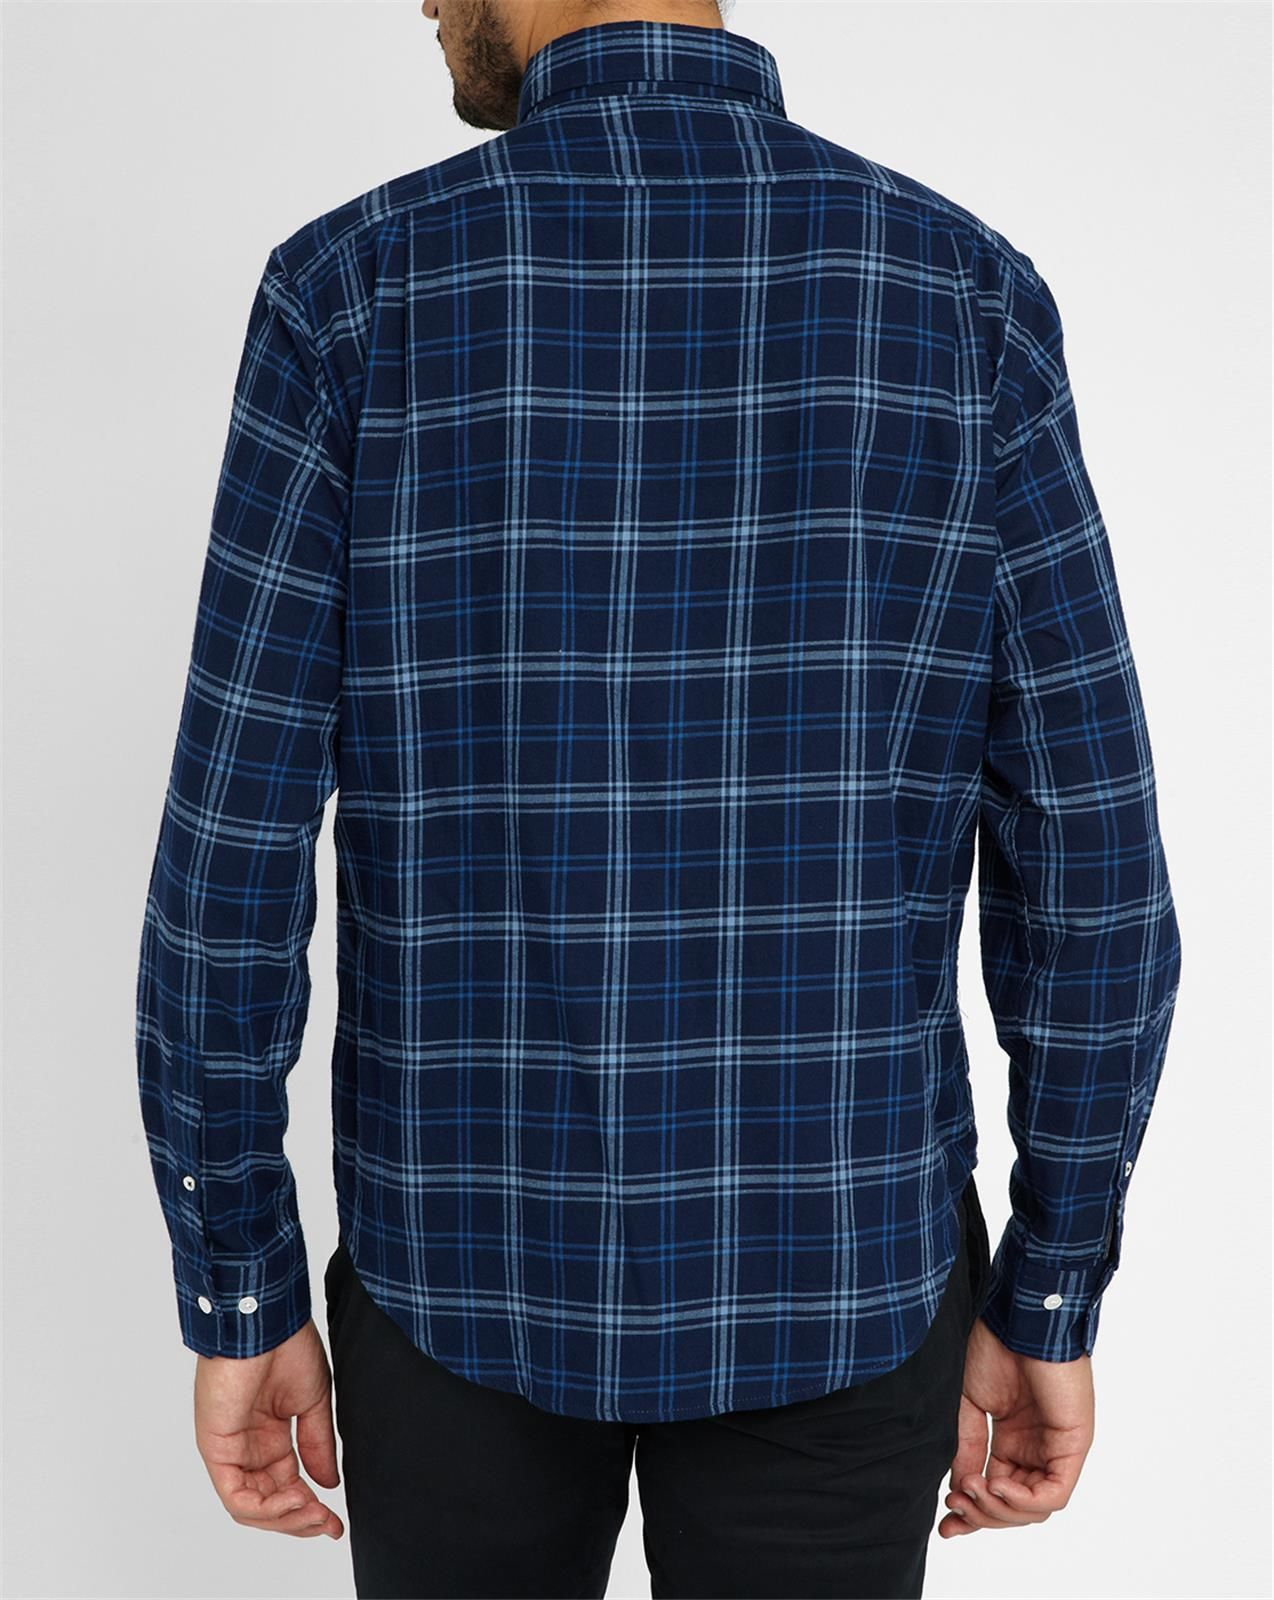 Flannel and plaid button-down shirts from UNTUCKit keep you cozy and casual all at once. Shop untucked men's plaid and flannel shirts today! Plaids & Flannels. Red Teal & White Plaid with Blue Plaid Interior. New. Quick Shop. Alte Reben - Wrinkle Free. Wrinkle Free Red White & Blue Mini Plaid. New. Quick Shop.